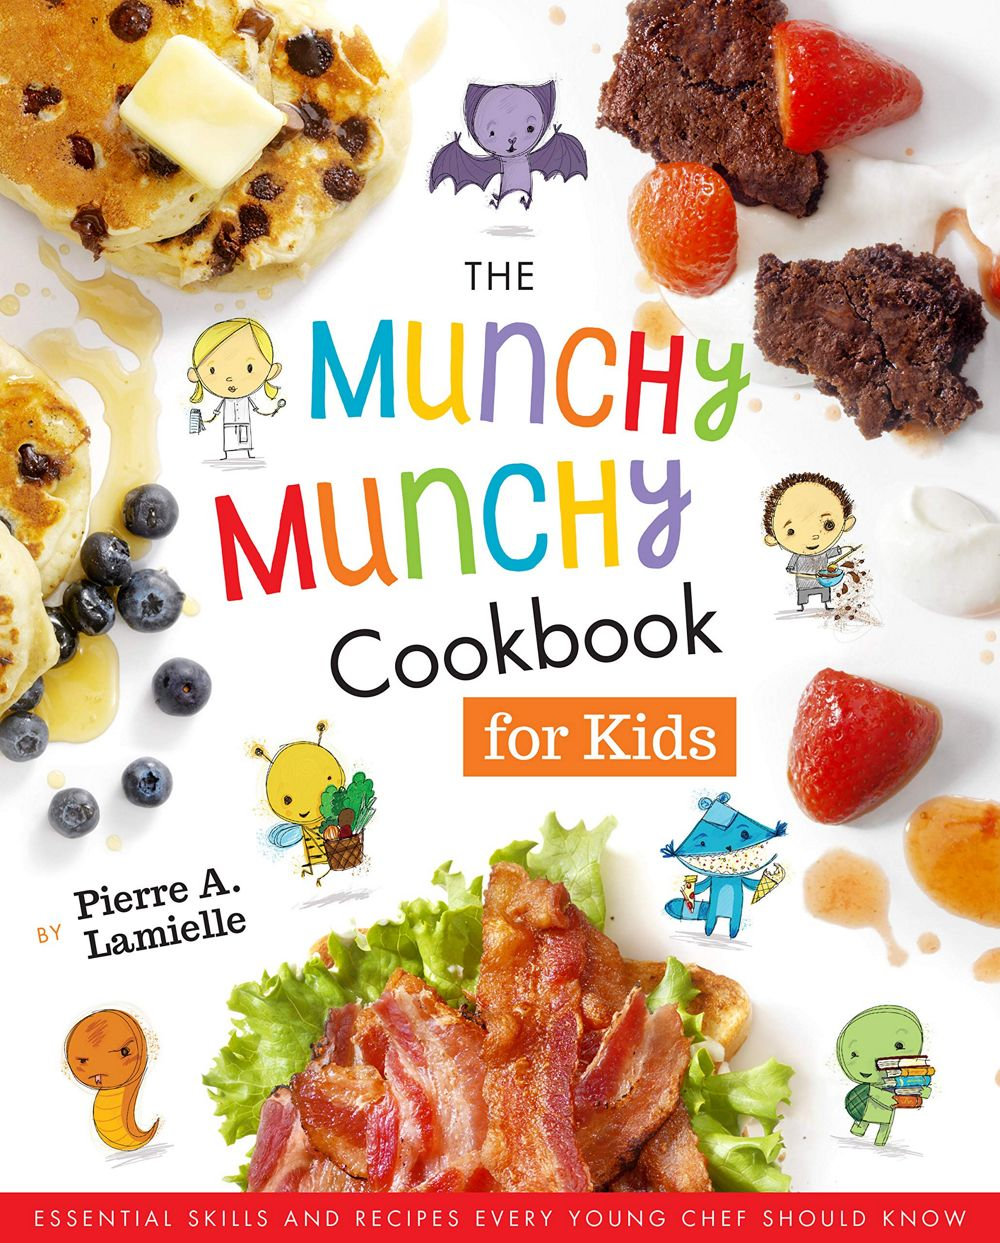 The Munchy Munchy Cookbook